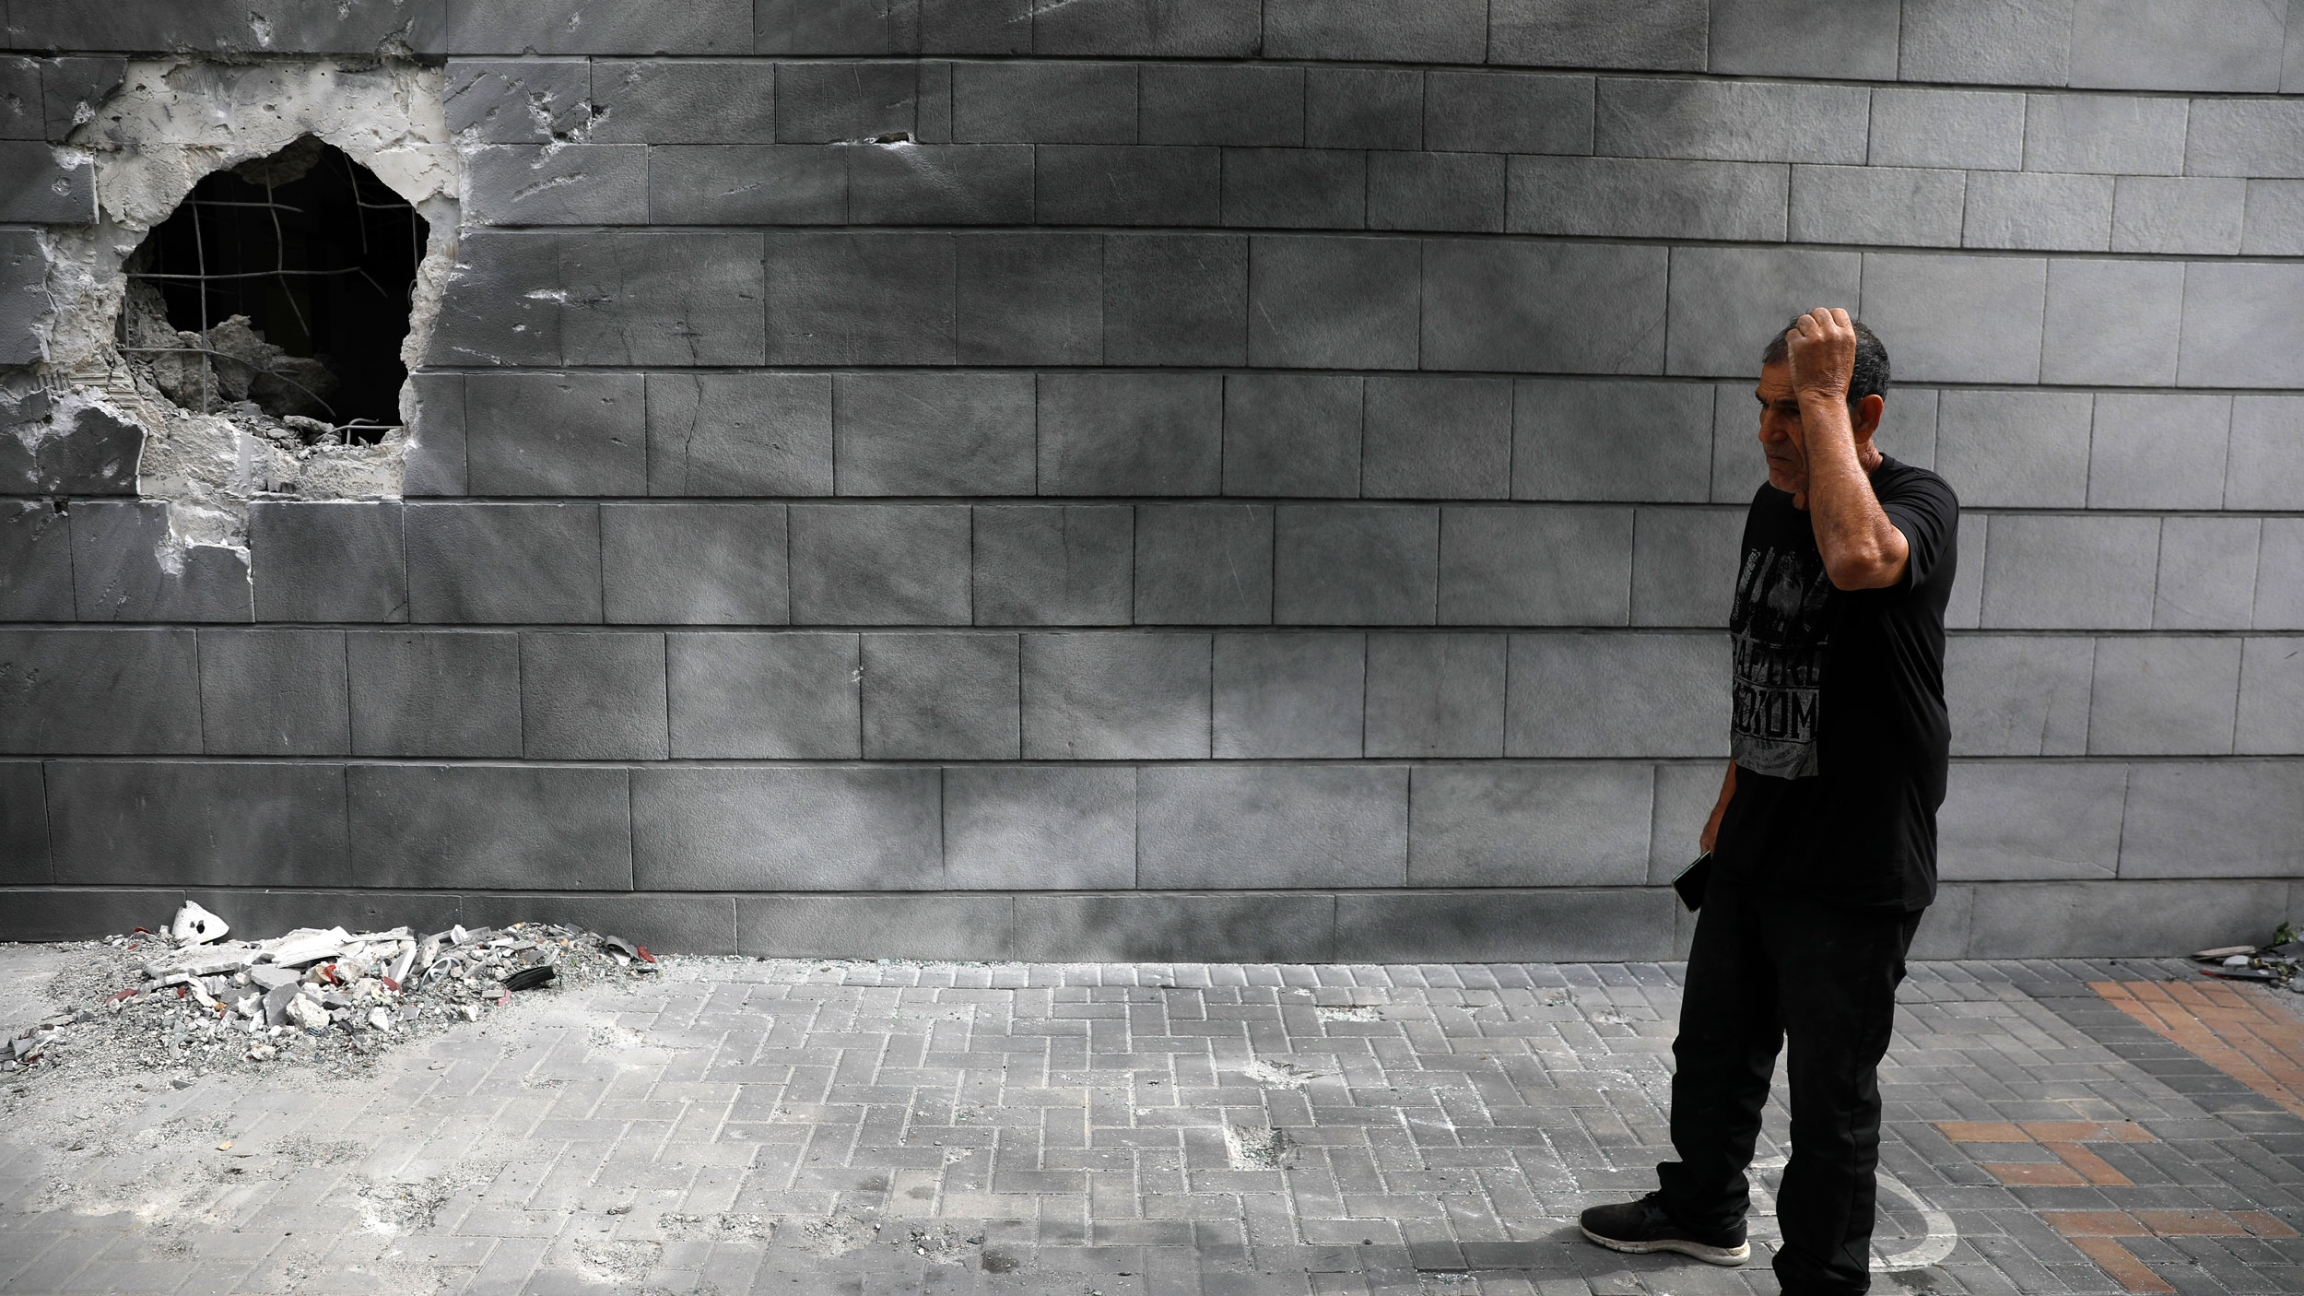 A man is show wearing a black t-shirt and pants while standing next to a cinder block wall with a large hole in it.